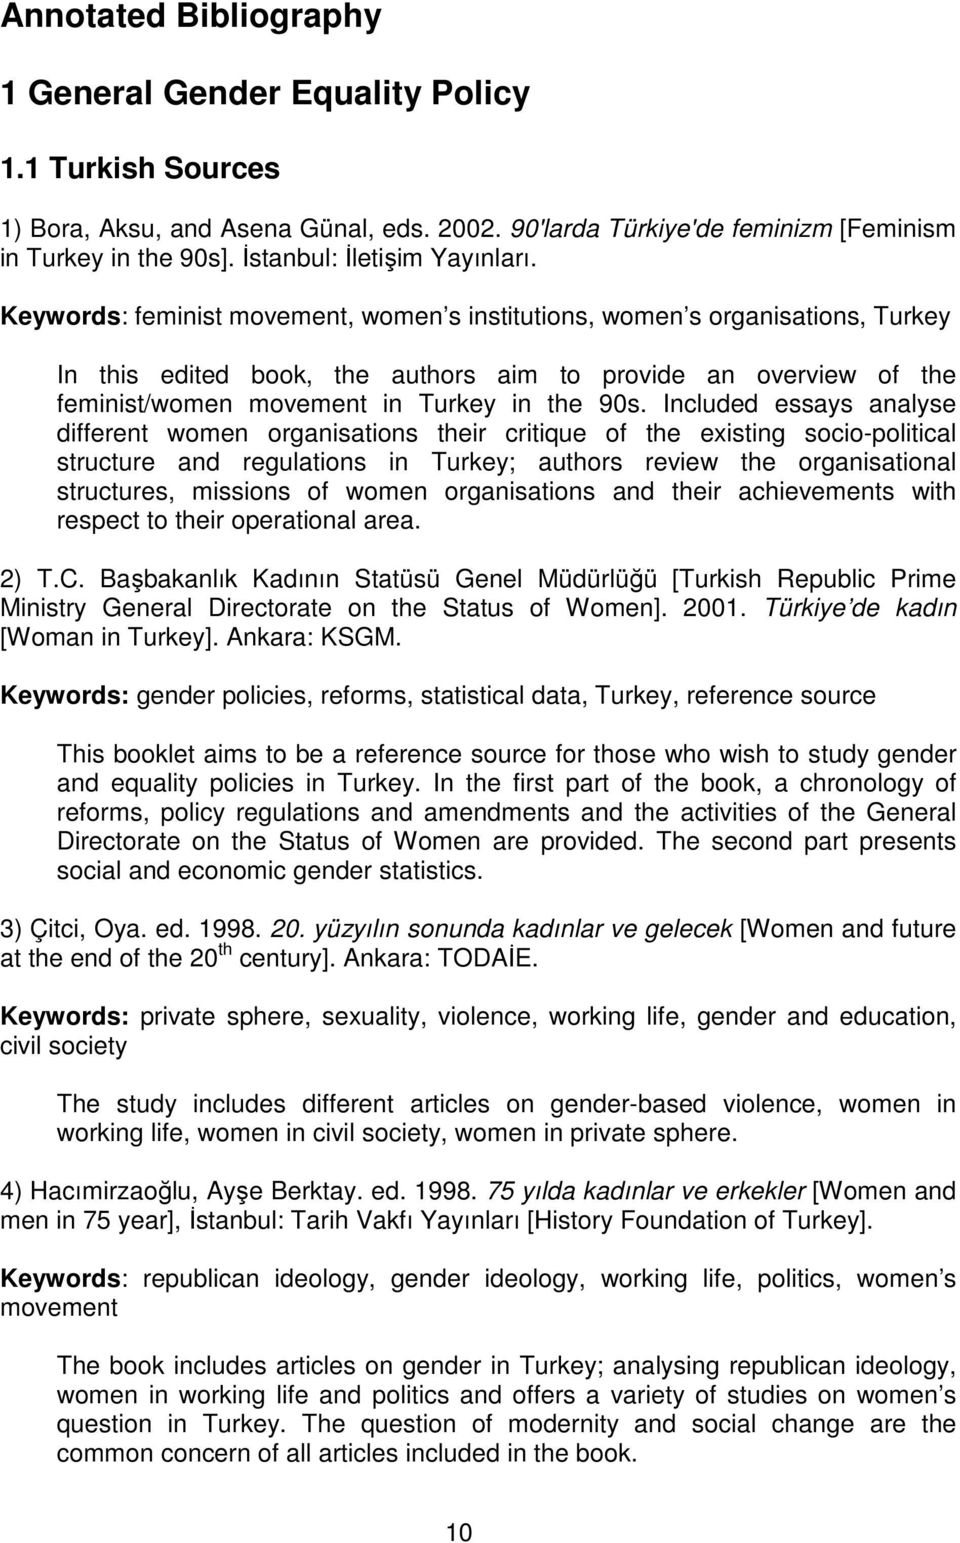 Keywords: feminist movement, women s institutions, women s organisations, Turkey In this edited book, the authors aim to provide an overview of the feminist/women movement in Turkey in the 90s.